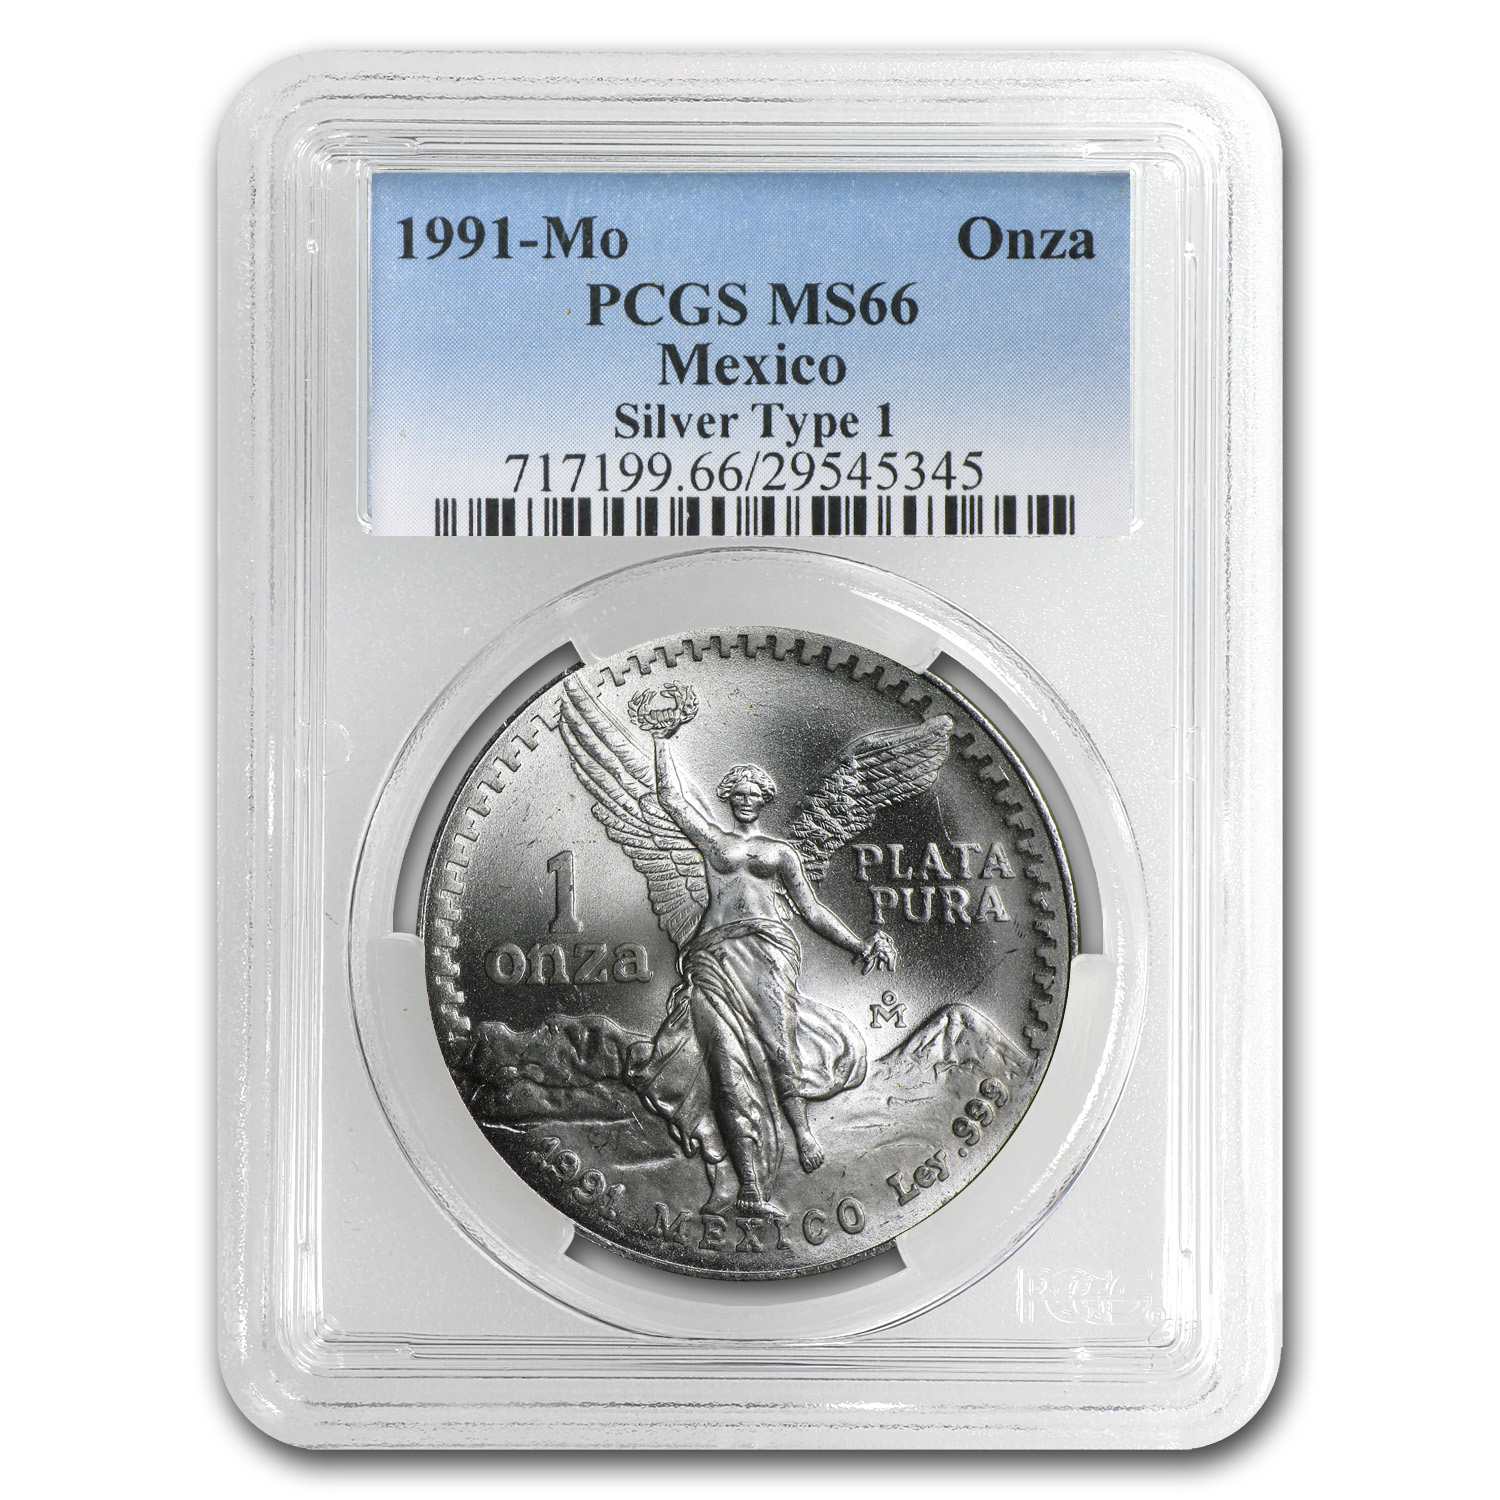 1991 Mexico 1 oz Silver Libertad Type 1 MS-66 PCGS